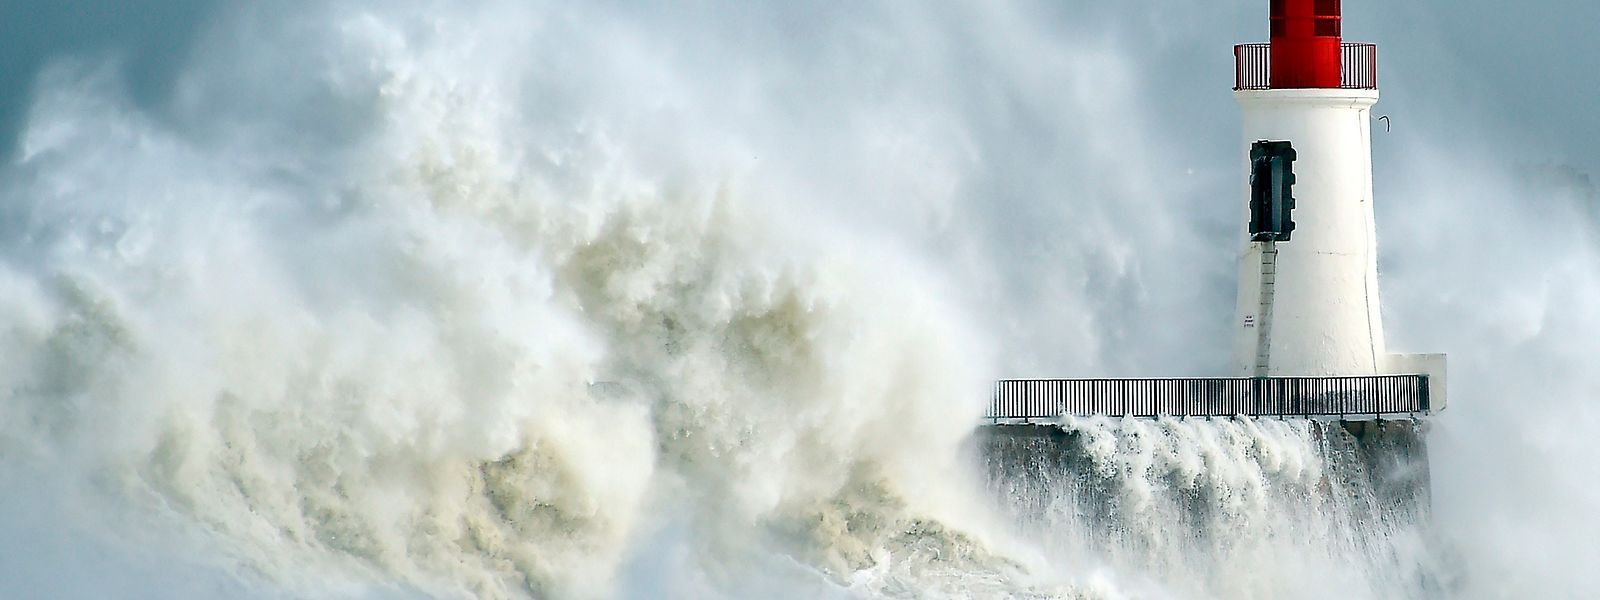 (FILES) This file photo taken on February 9, 2016 shows waves breaking against a pier and a lighthouse in Les Sables-d'Olonne, western France. Deaths due to weather-related disasters in Europe could increase fifty-fold from an estimated 3,000 per year recently to 152,000 by century's end, mainly due to climate change, researchers warned on August 5, 2017.  / AFP PHOTO / LOIC VENANCE